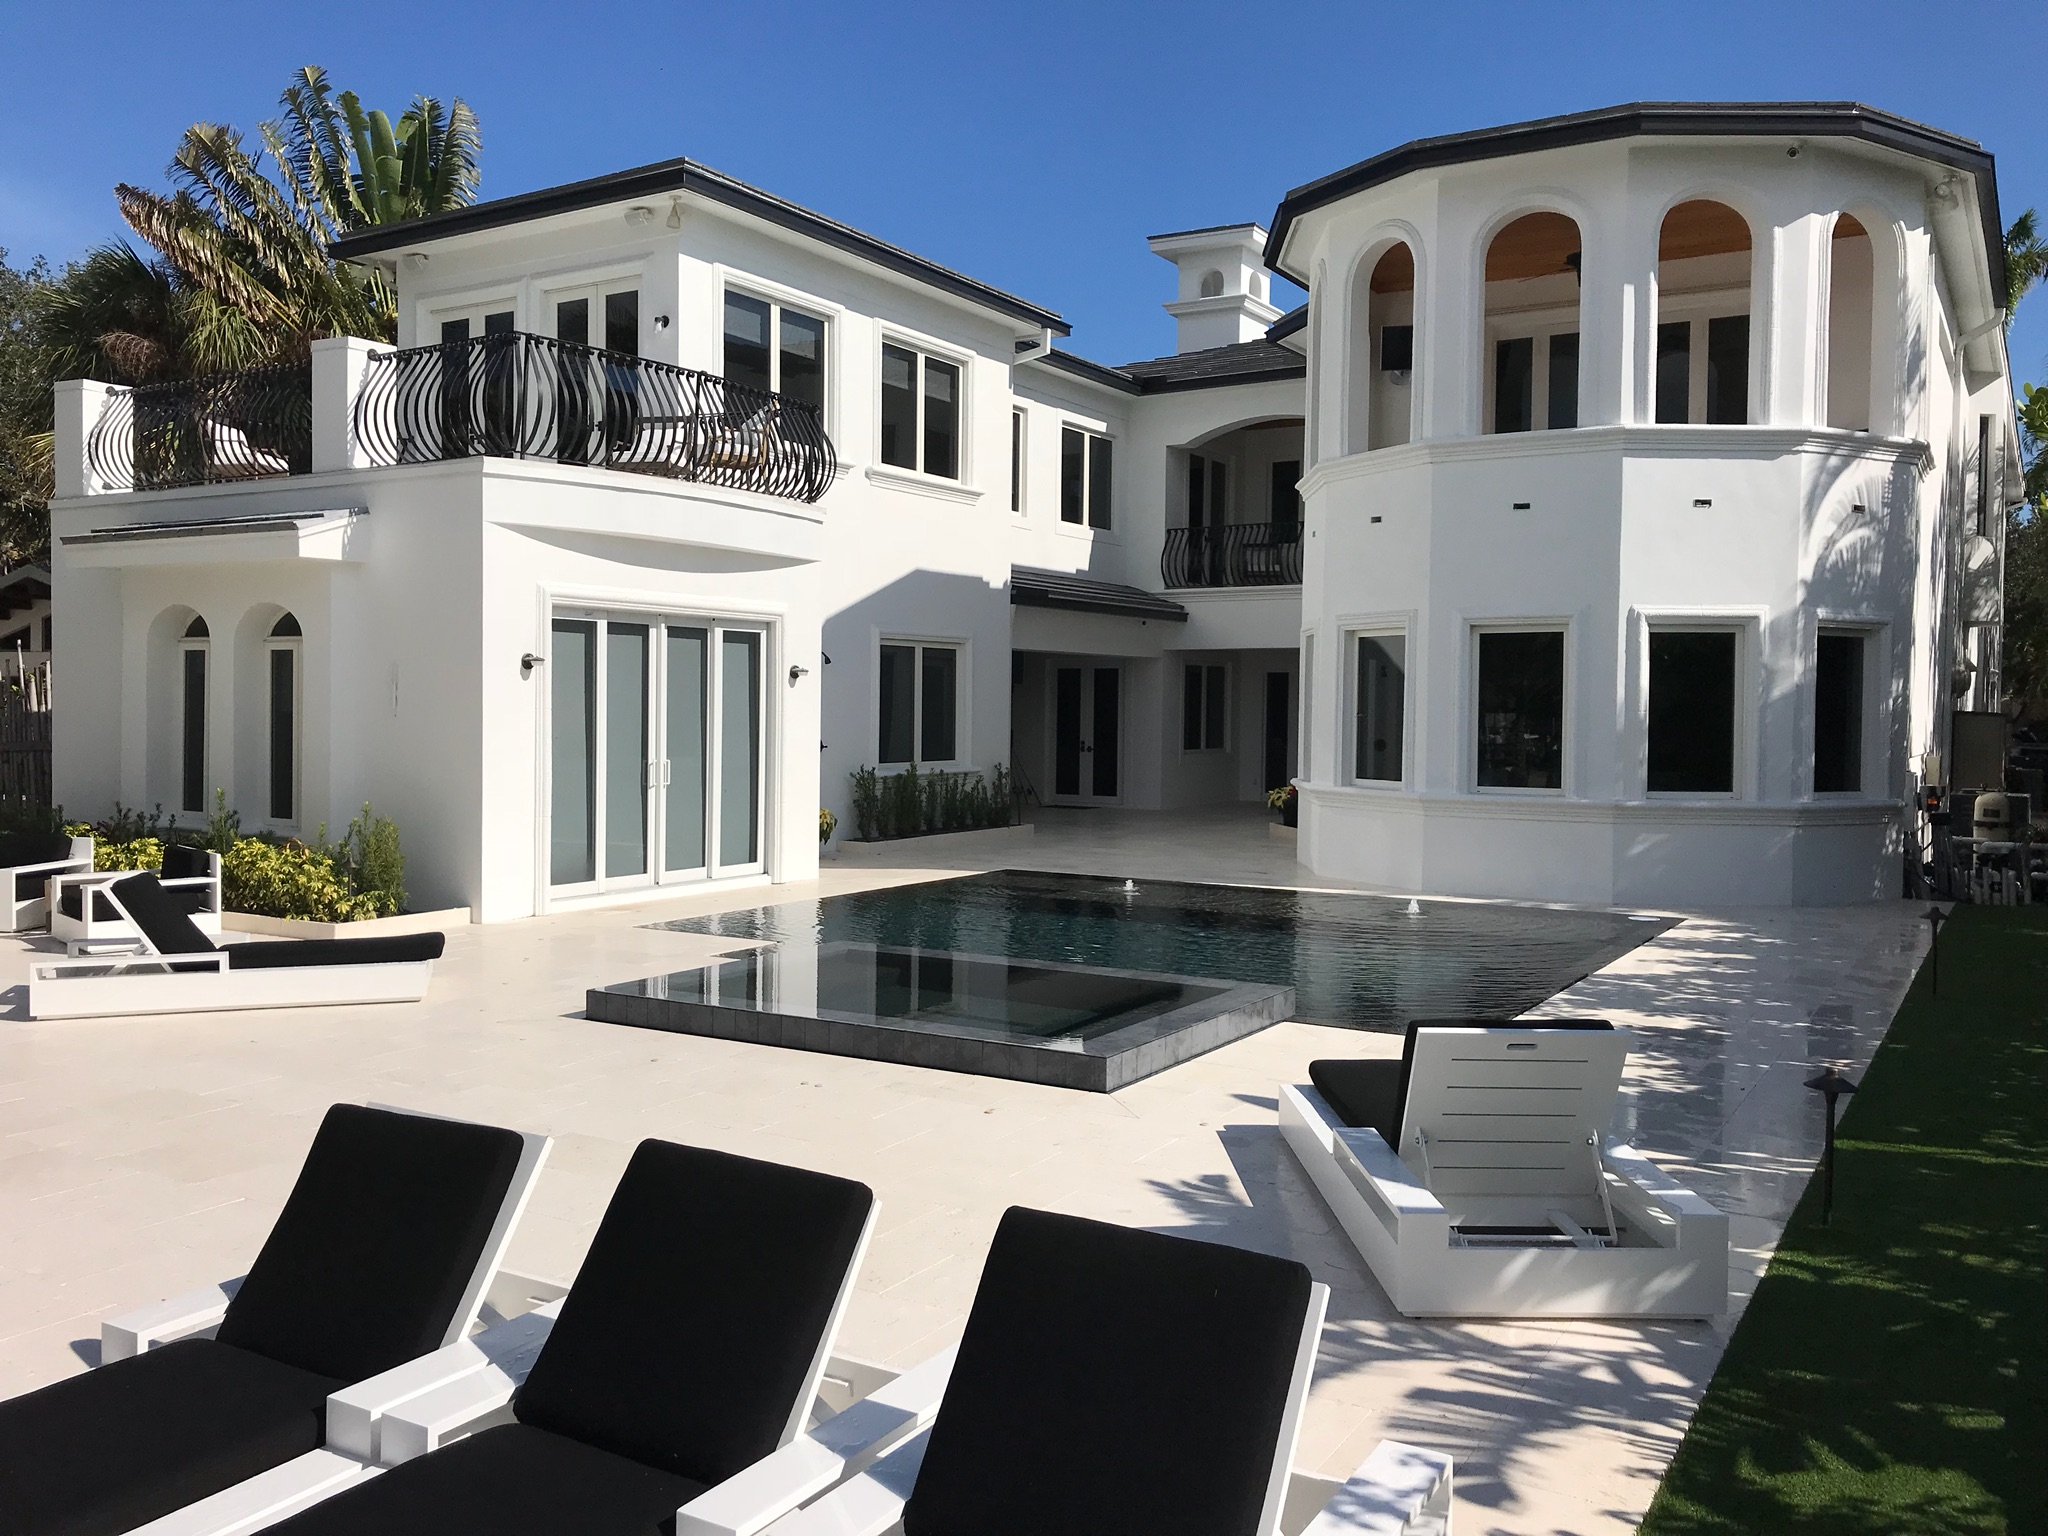 rhr pools luxurious dark interior pool for florida home